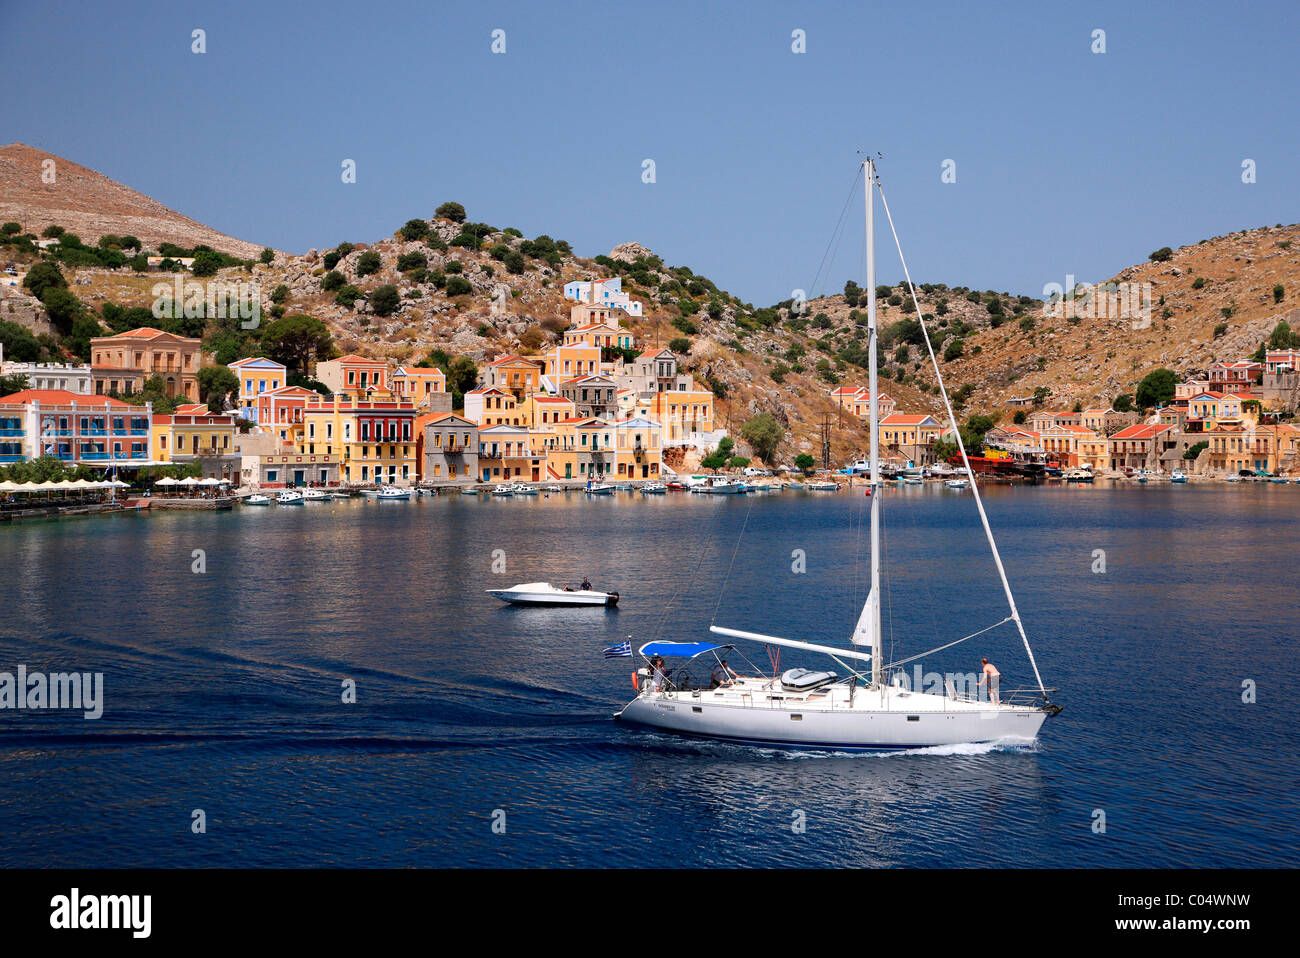 Greece, Symi island, Dodecanese. Partial view of Gyalos, capital and main port of the island. Stock Photo